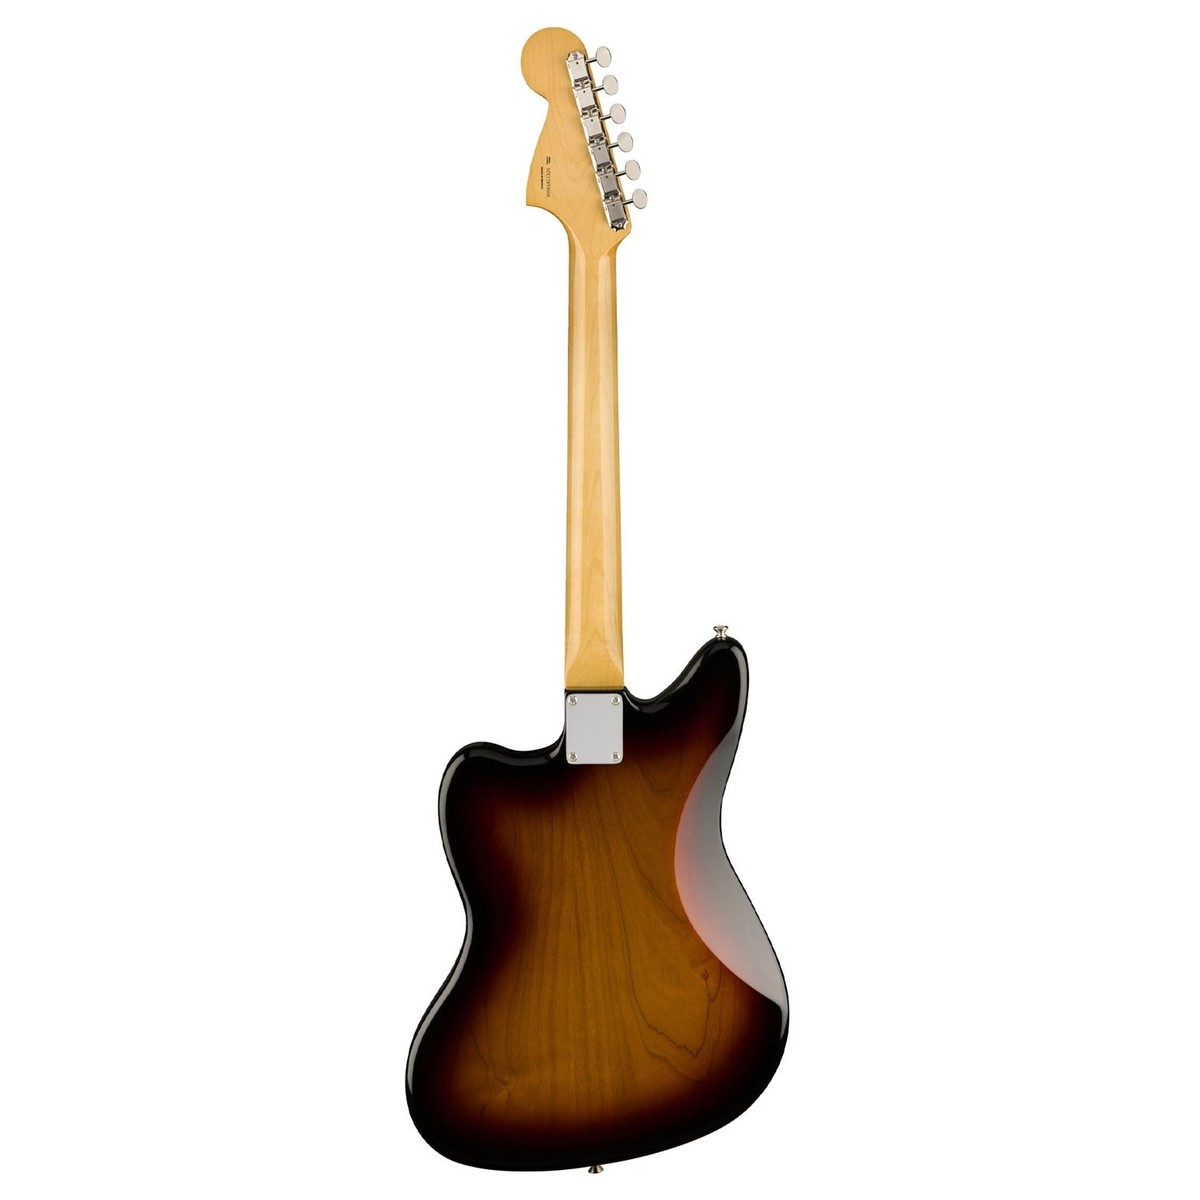 hight resolution of fender classic player jaguar special hh pau ferro 3 tone sunburst back loading zoom